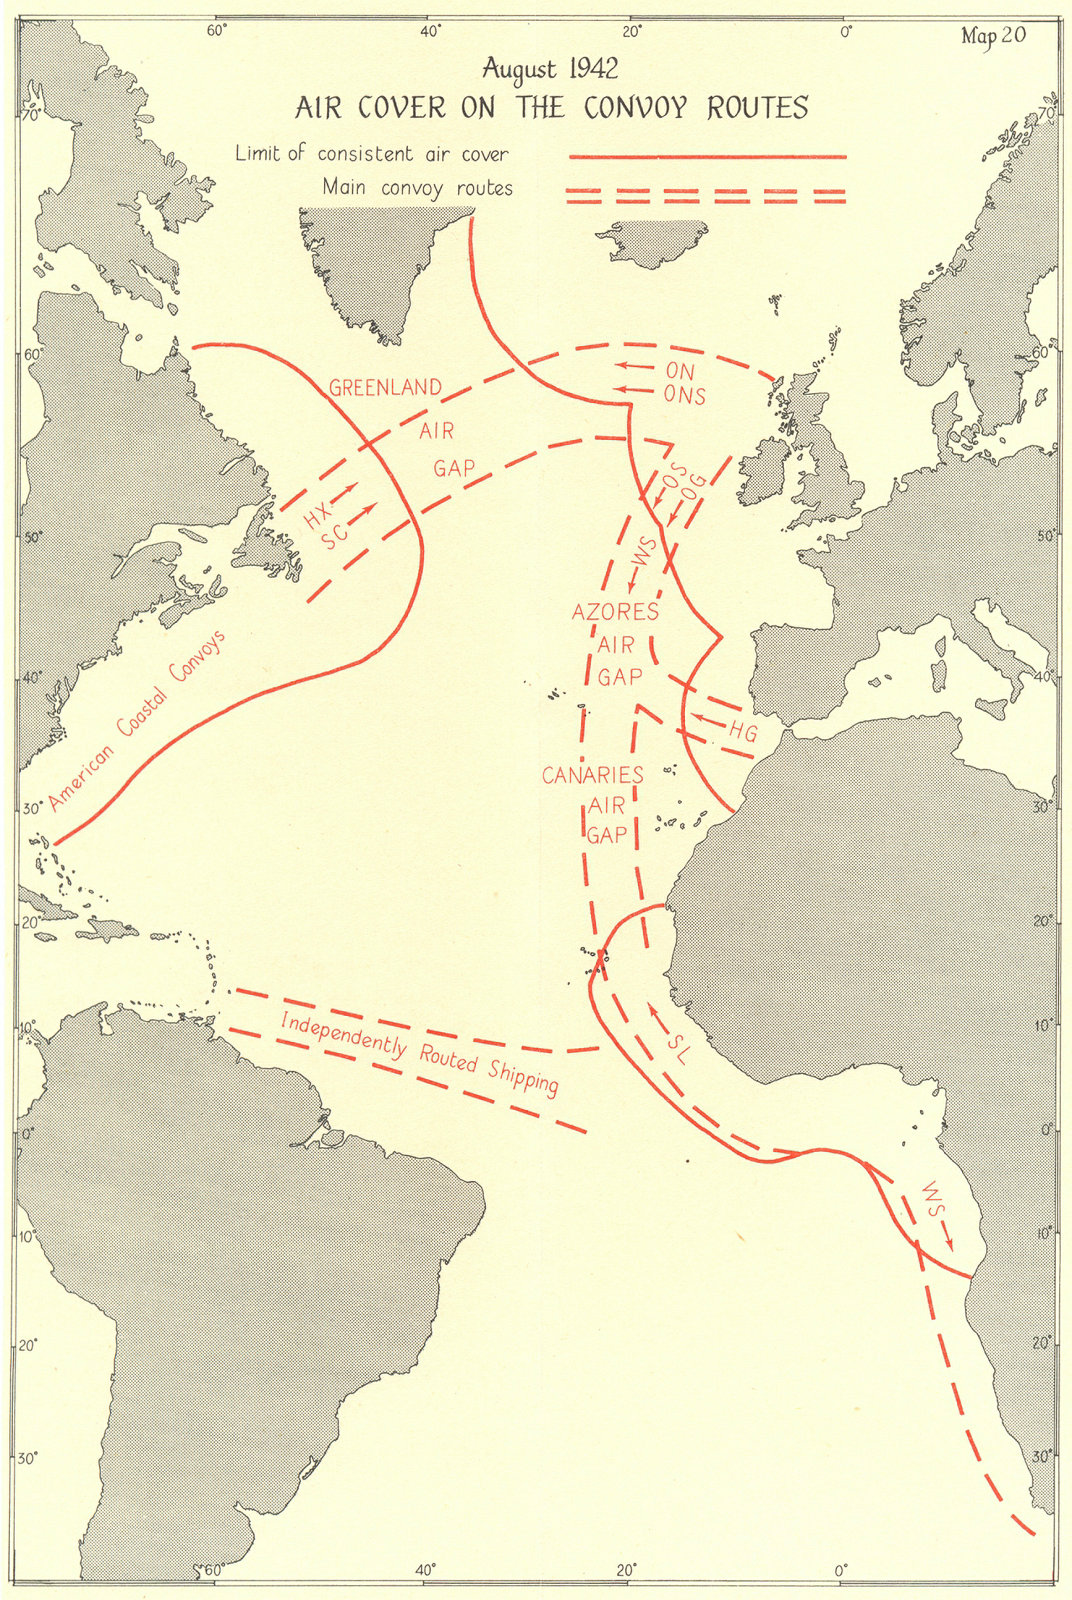 Associate Product BATTLE OF THE ATLANTIC. 2nd campaign. Aug 1942 Air cover convoy routes 1956 map